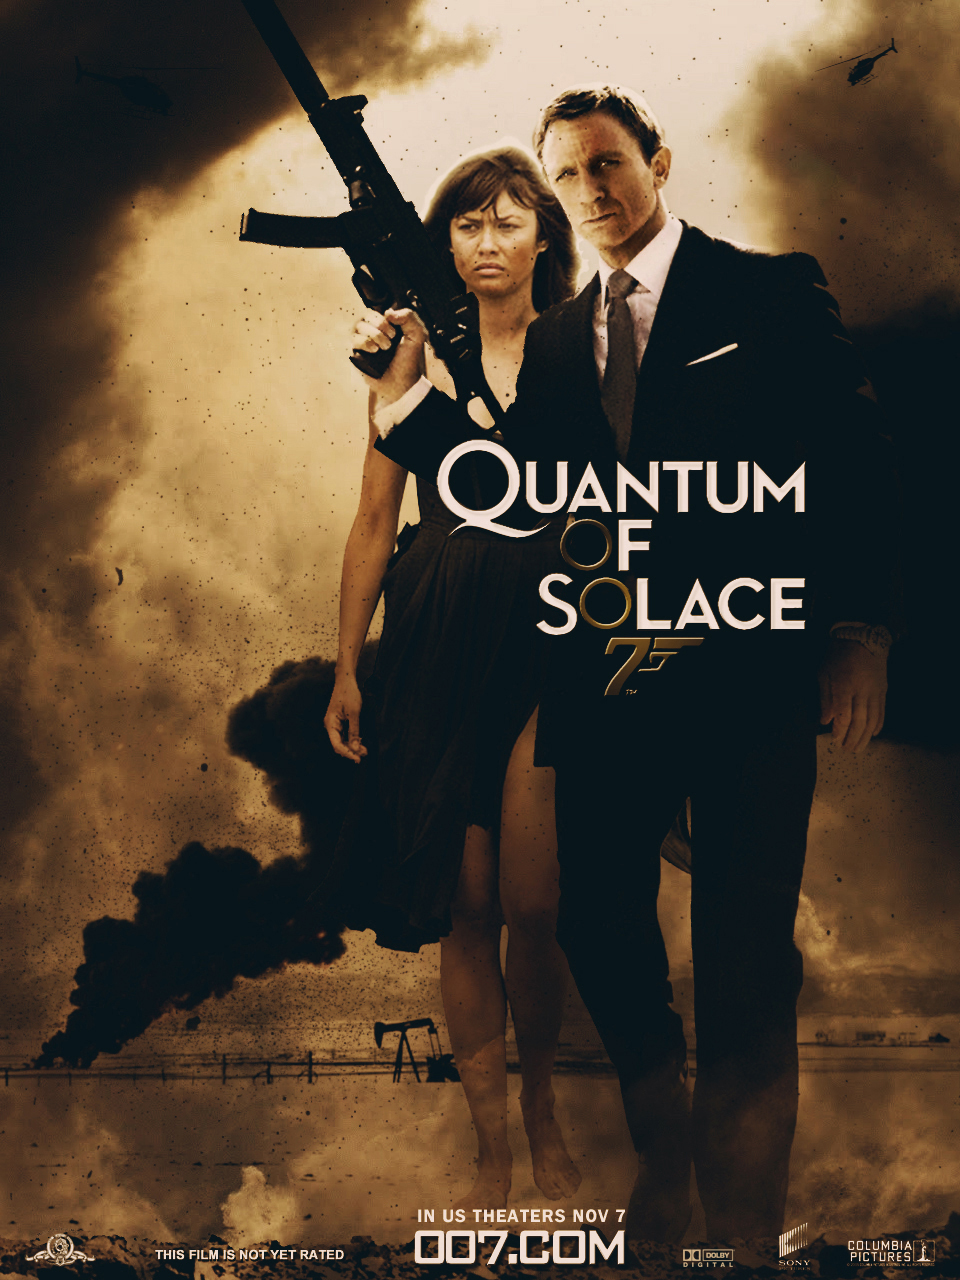 Quantum Of Solace Movie Cover Images & Pictures - Becuo